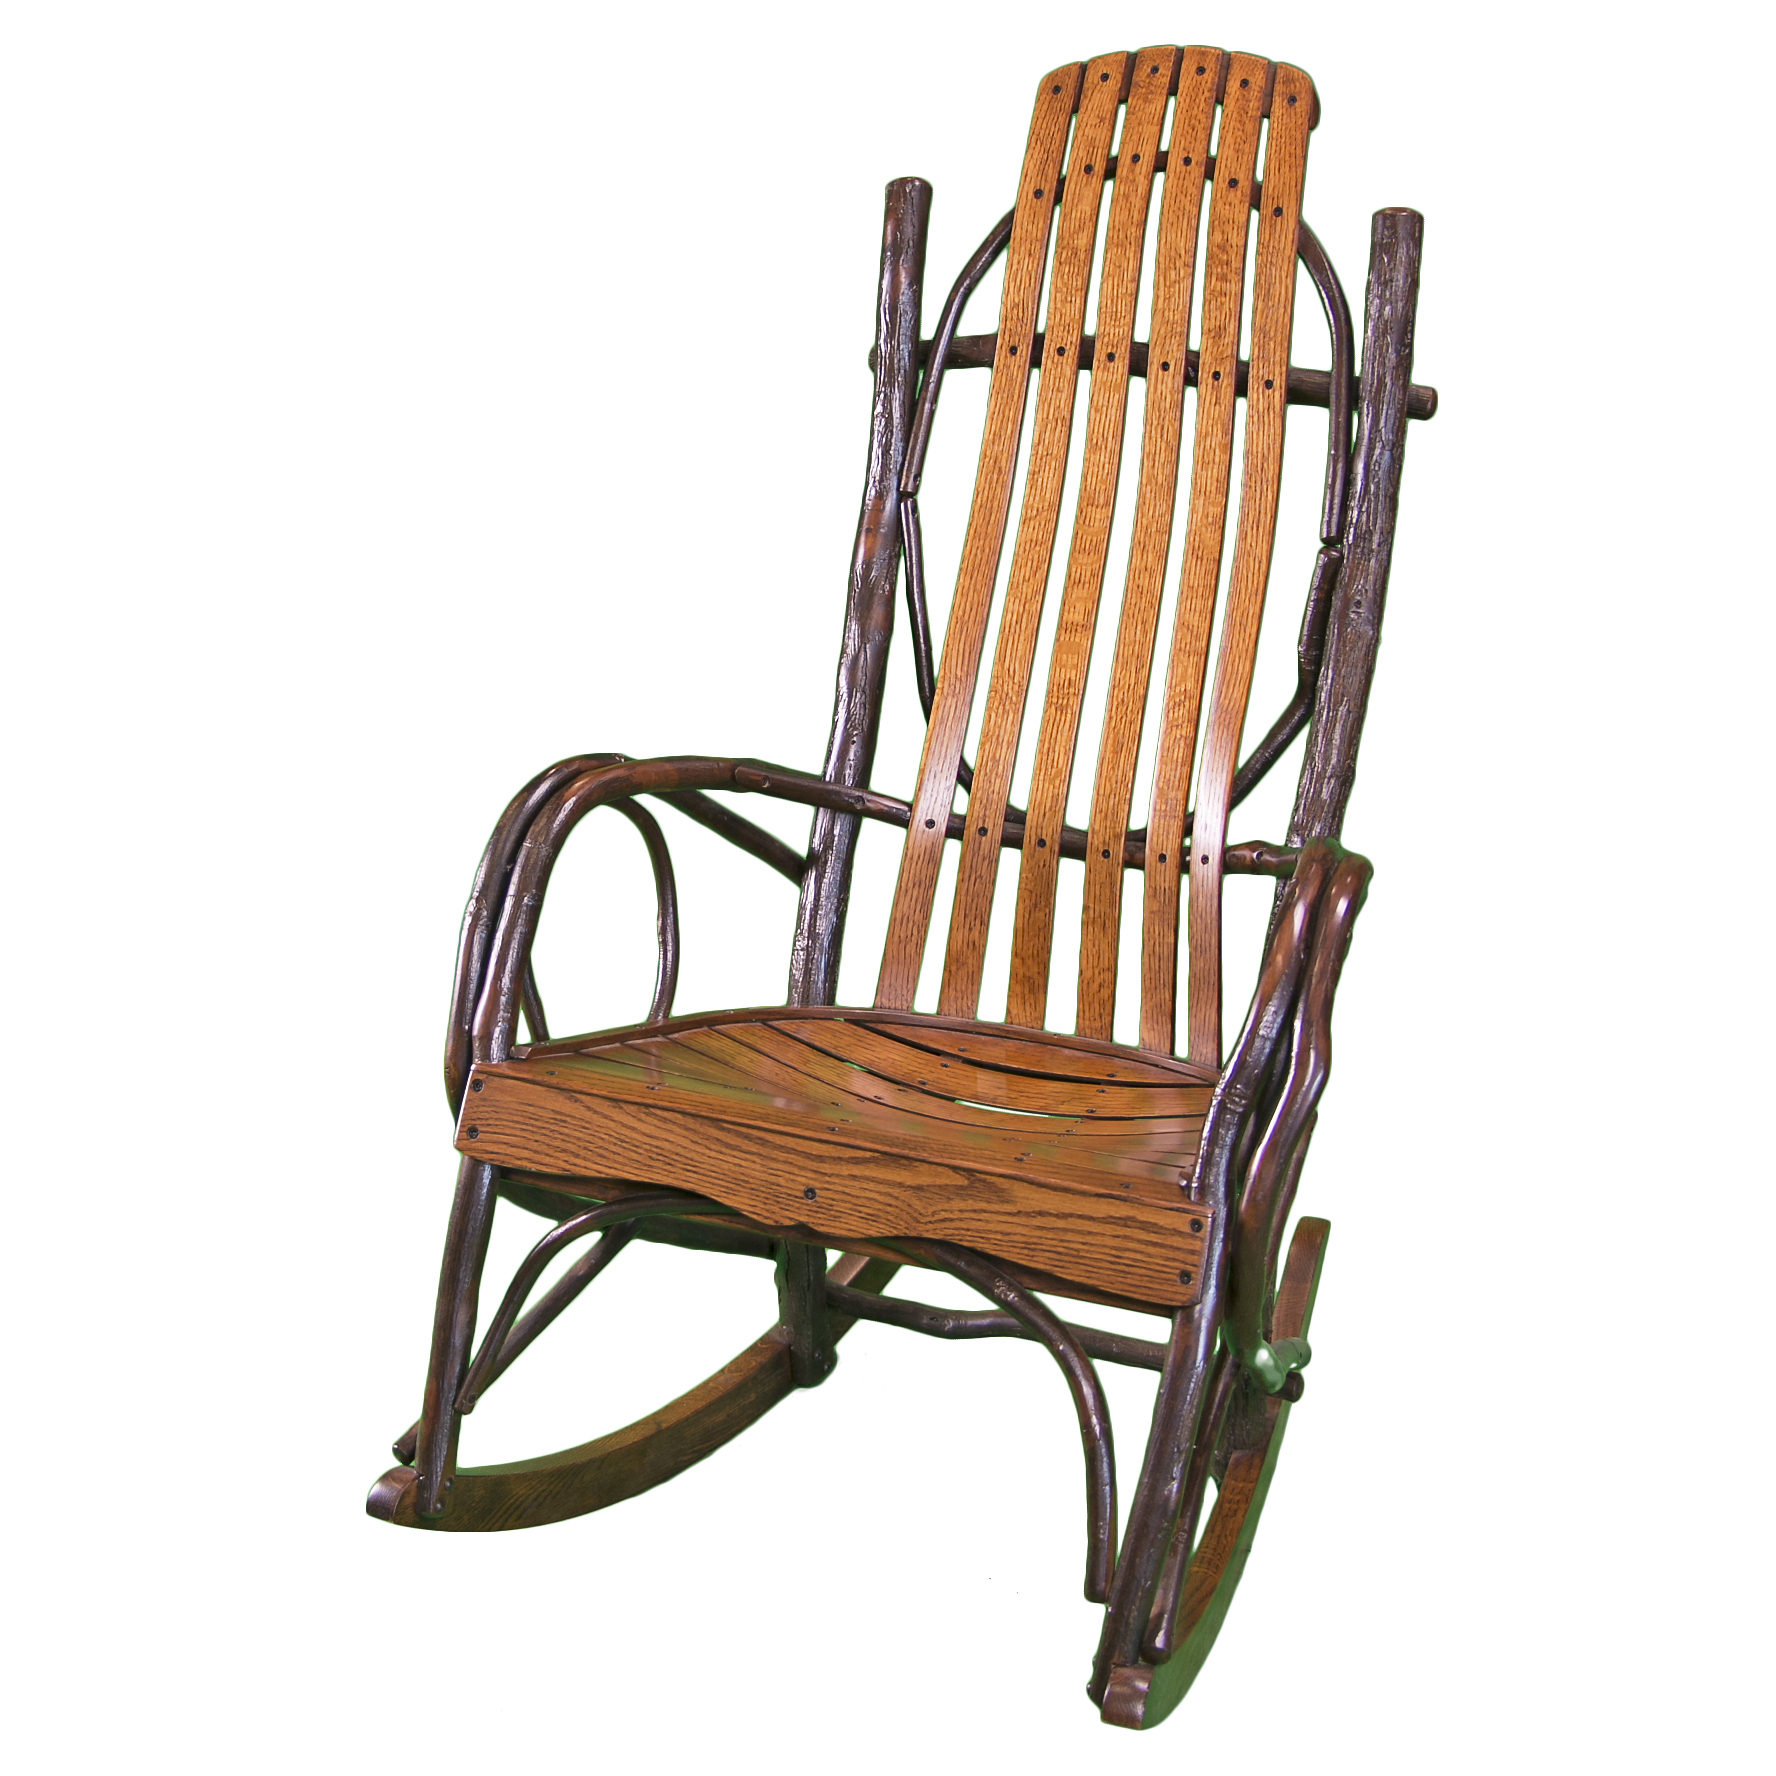 Wooden Rocking Chair Throughout 2020 Easy Outdoor Rocking Lounge Chairs (View 21 of 25)